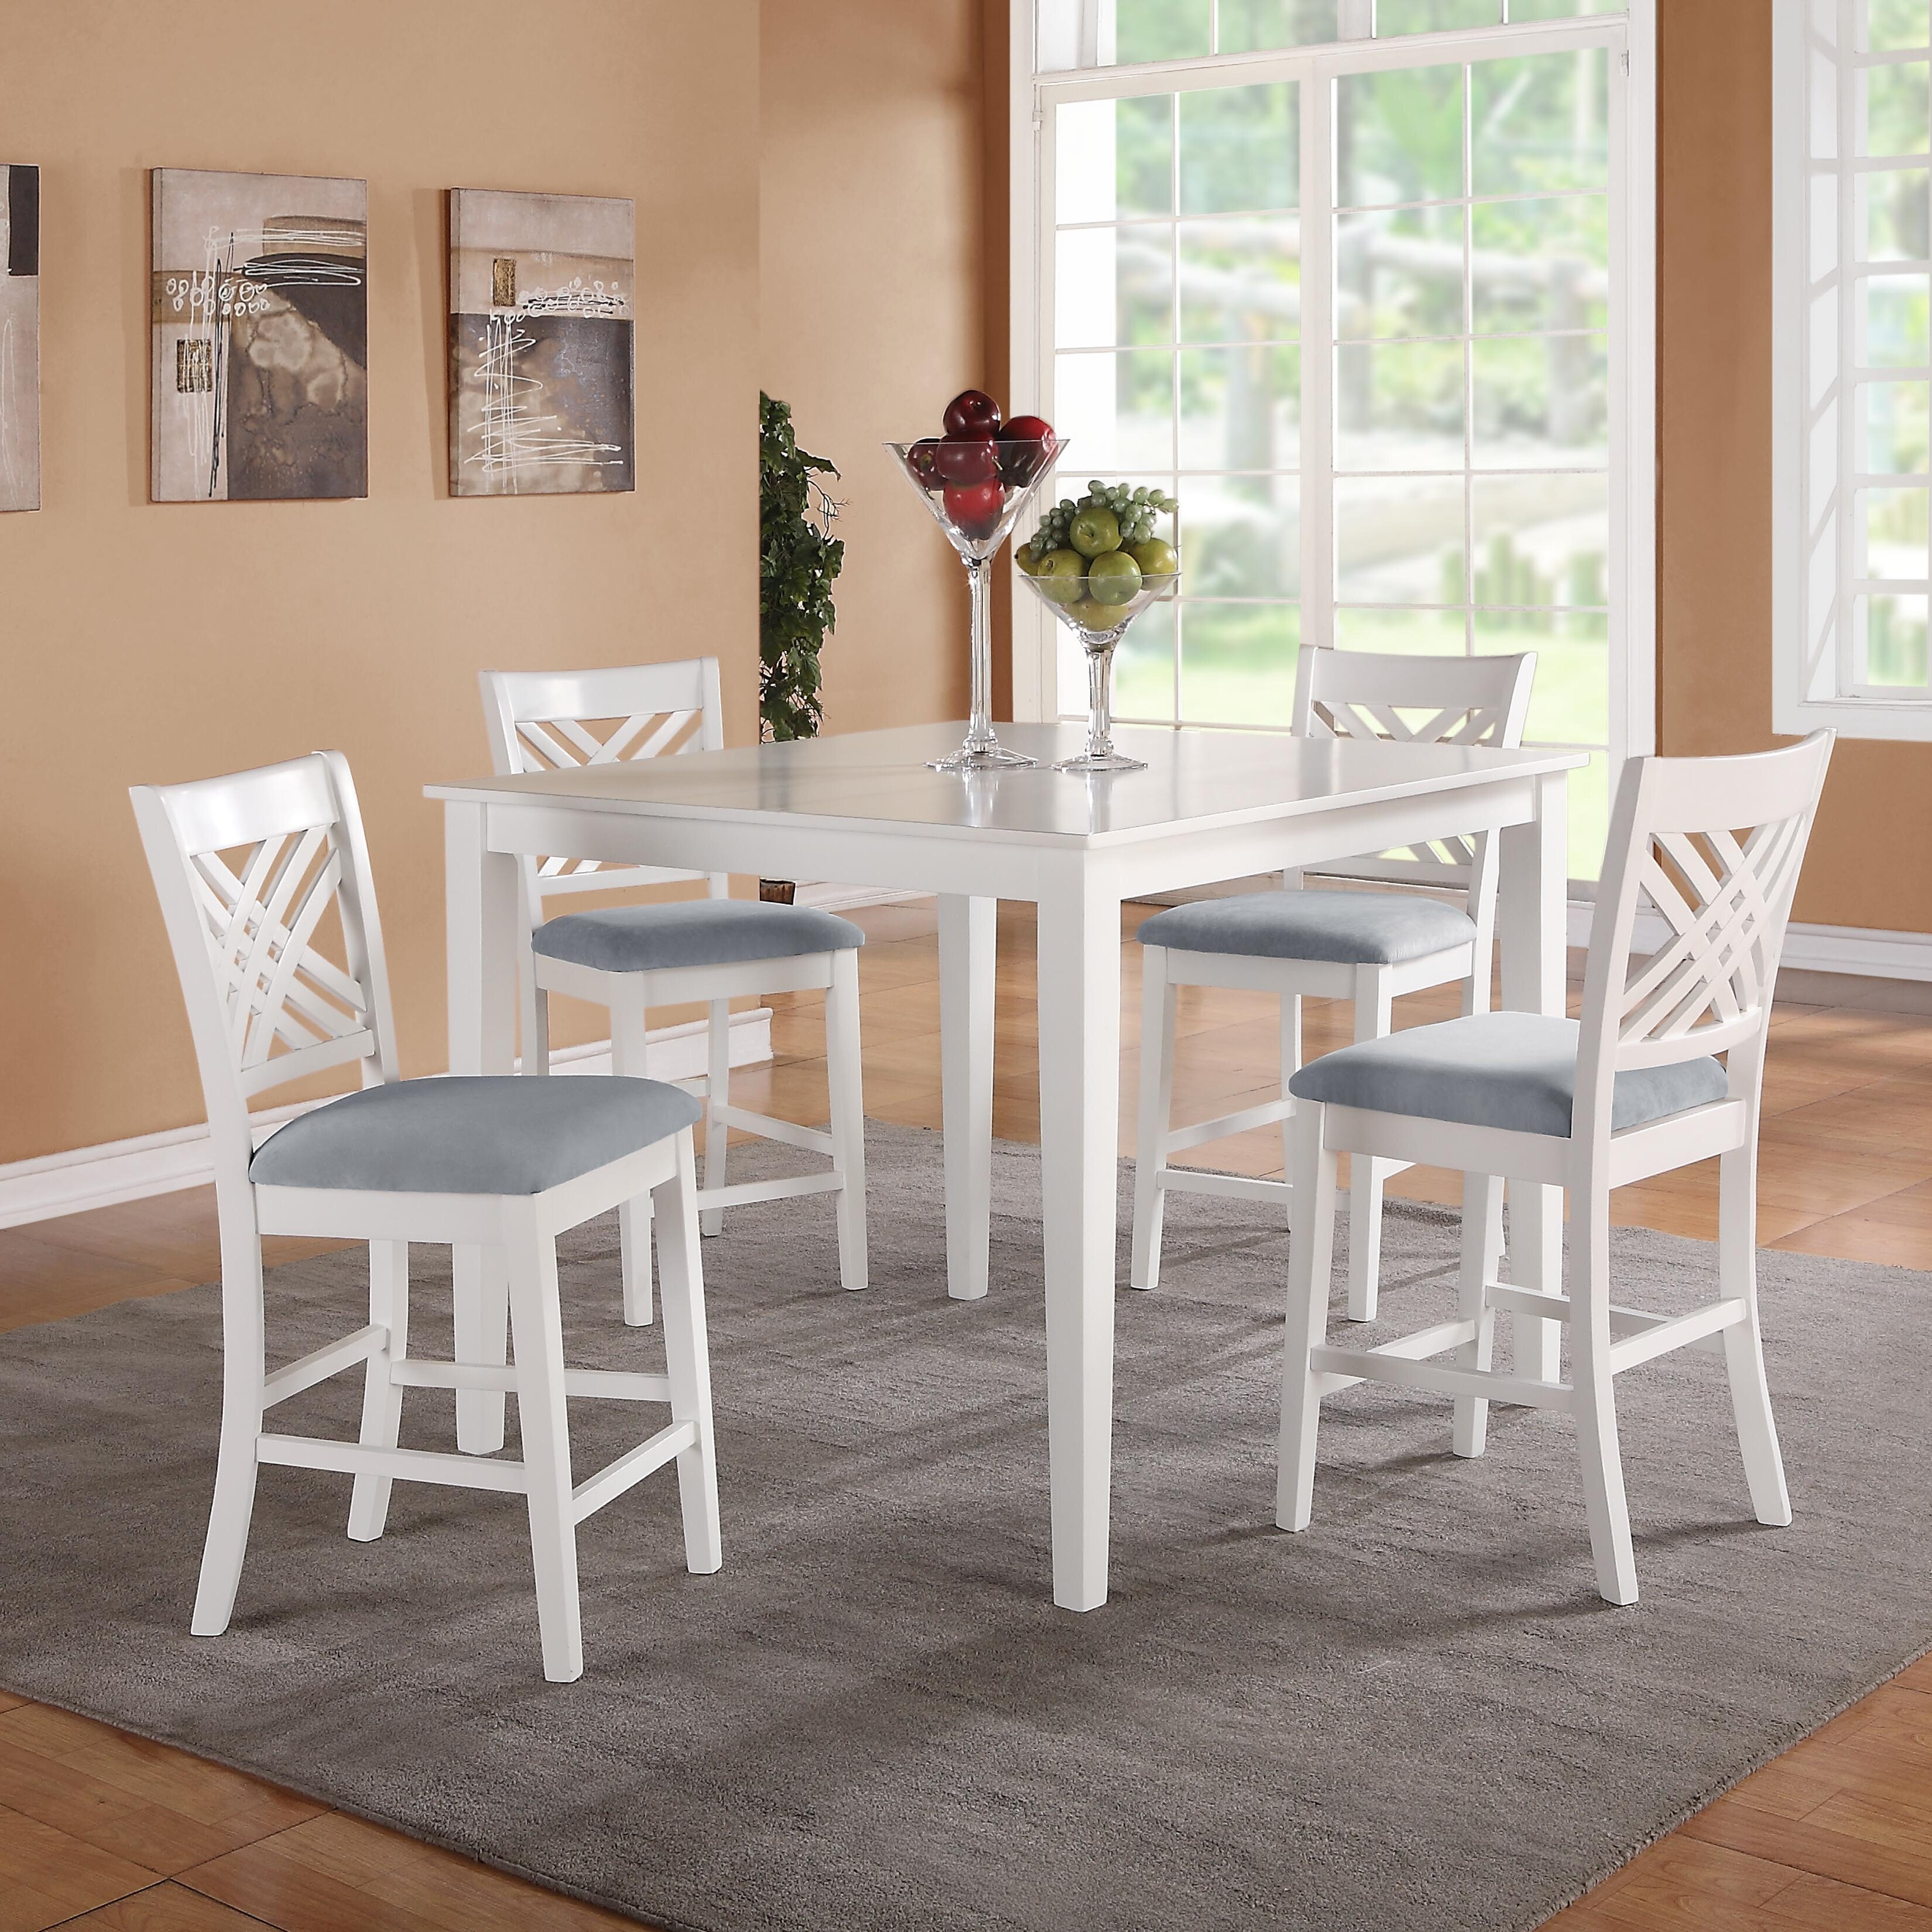 5 Chair Dining Set: Standard Furniture Brooklyn 5 Piece Dining Set